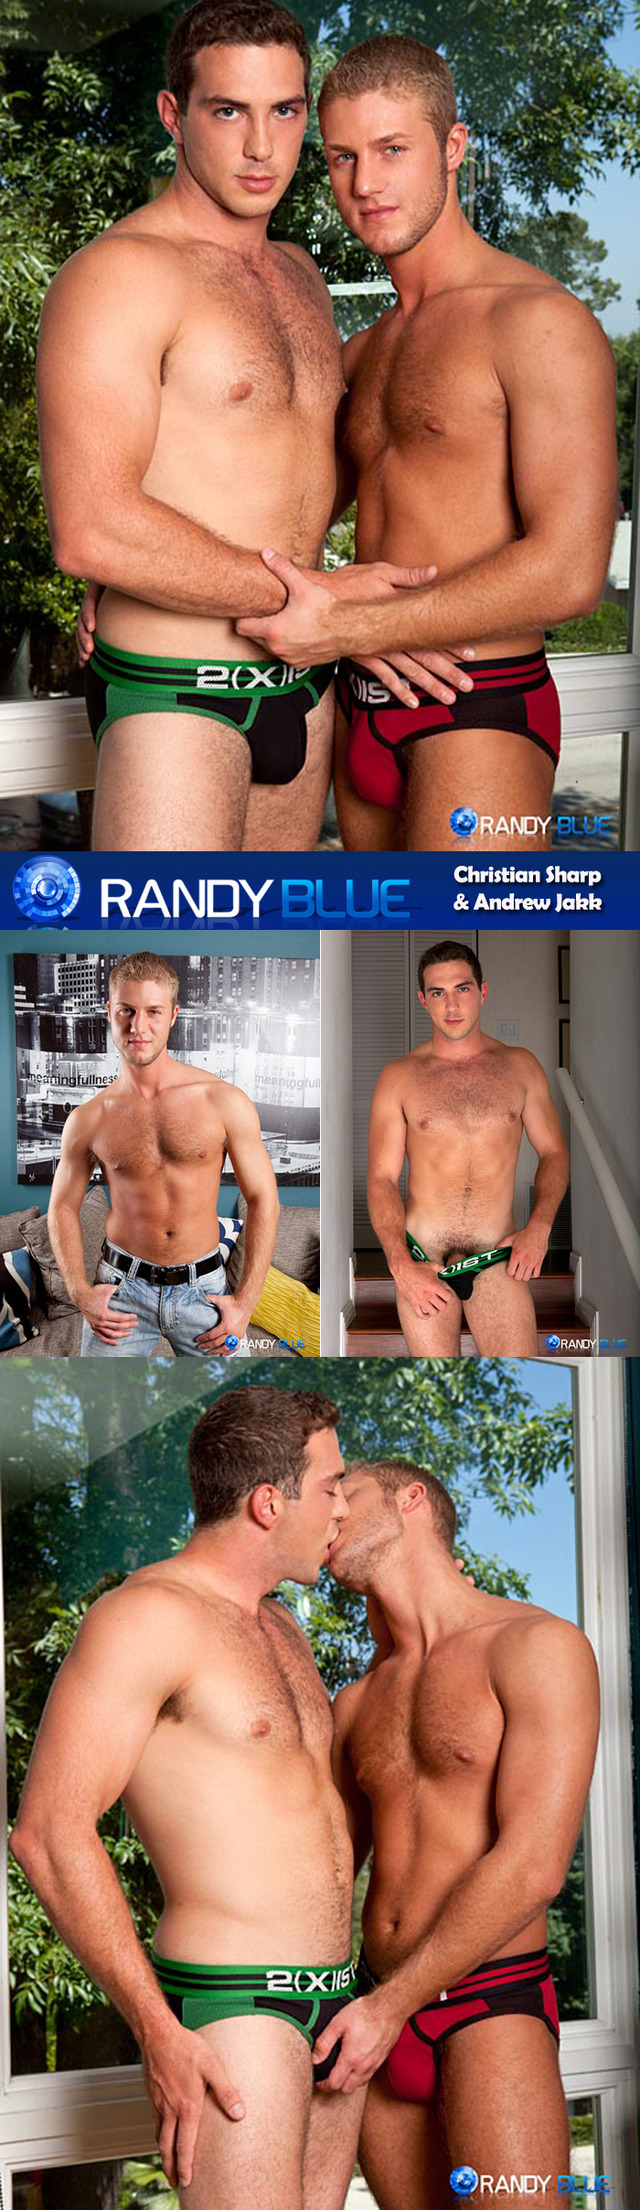 Andrew Jakk Porn returns video randy blue hardcore christian andrew jakk hot hunks sharp wild